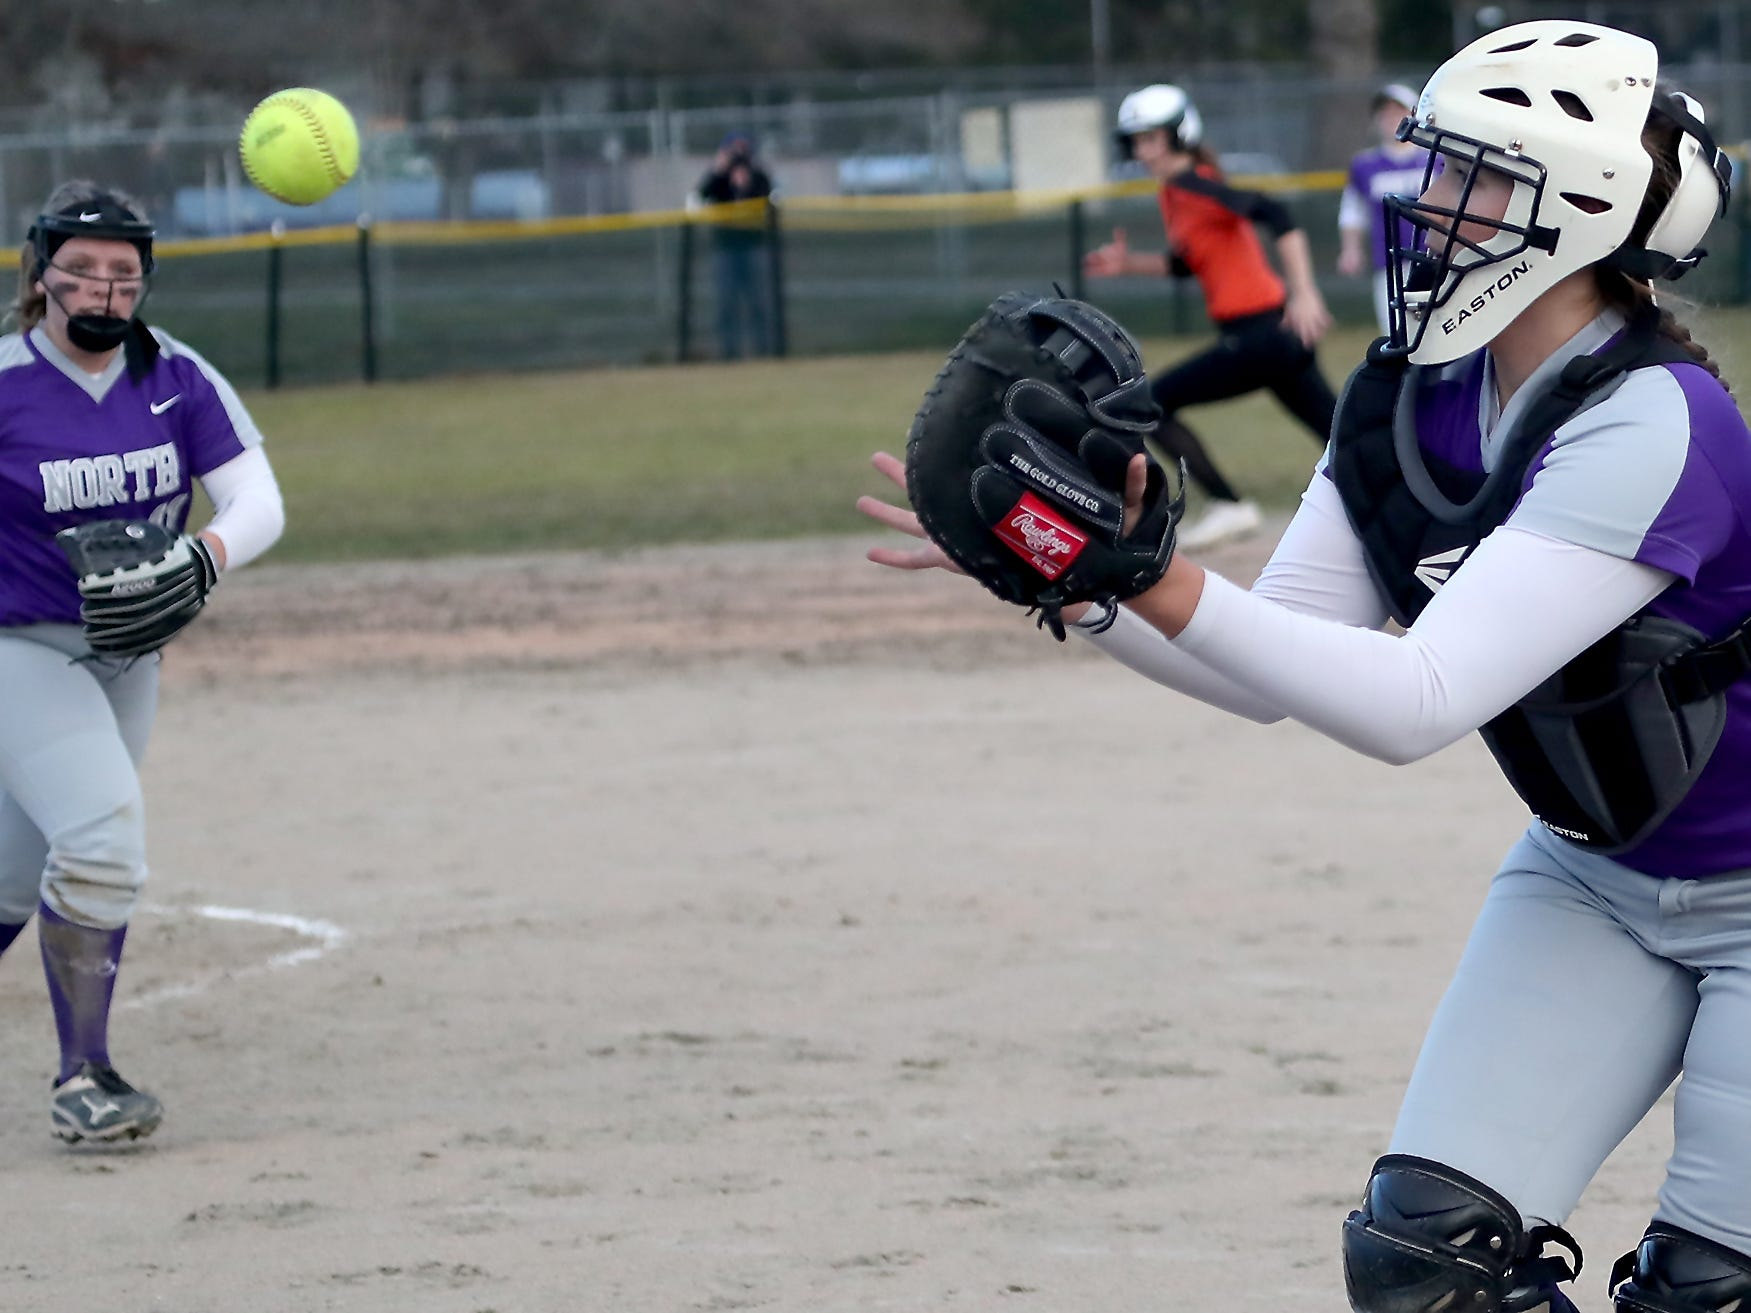 North Kitsap catcher Lamara Villiard makes a catch against Central Kitsap in Poulsbo on Wednesday, March 13, 2019.